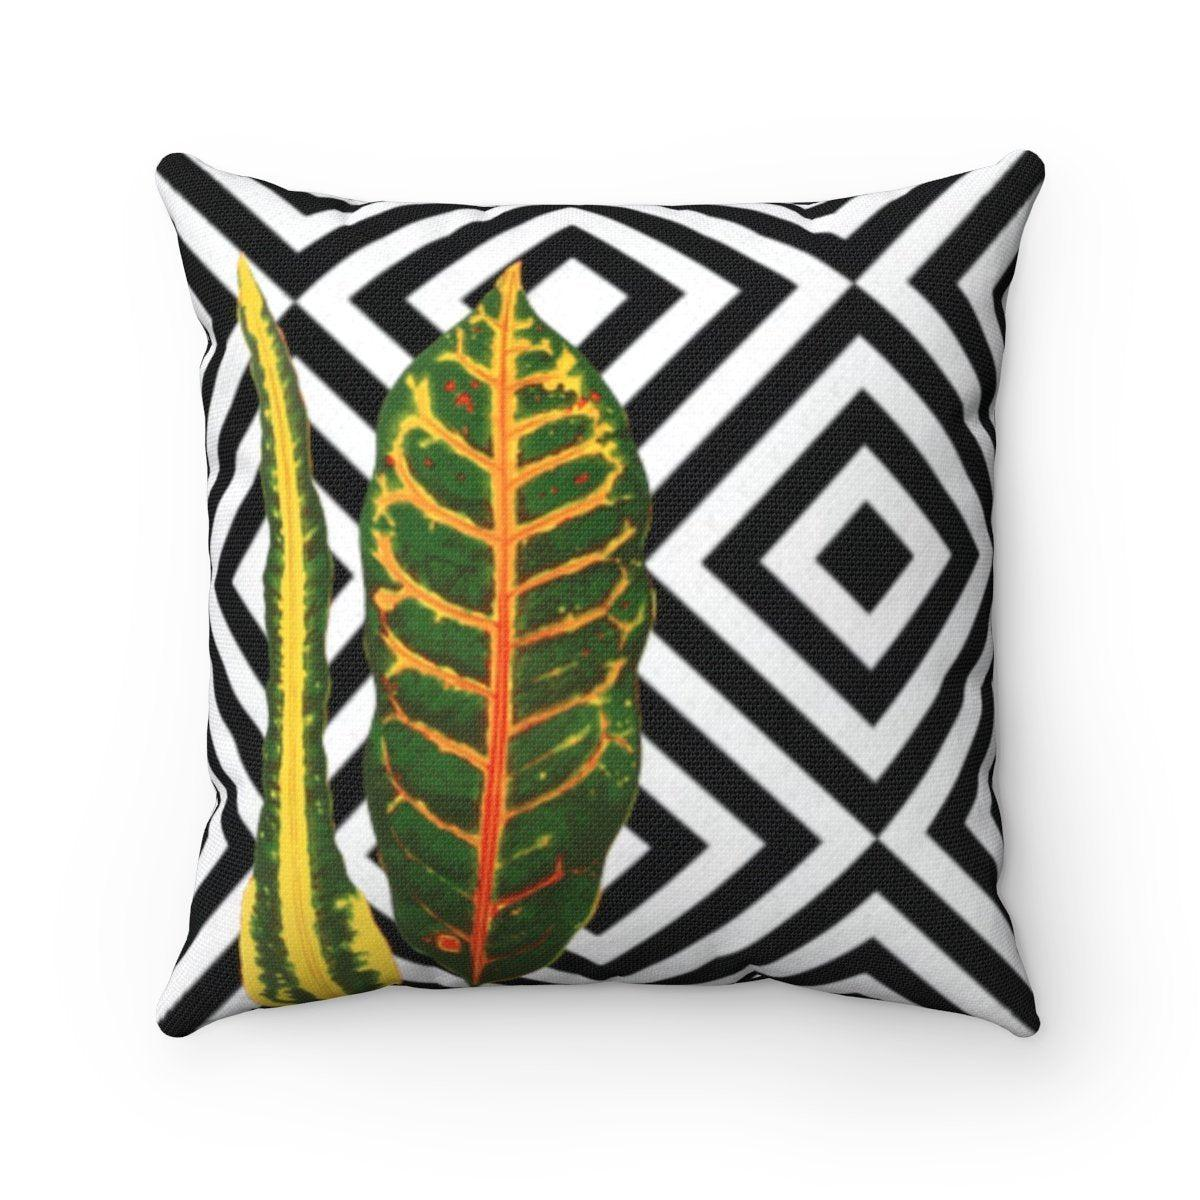 Luxury | jungle | tropical | floral abstract decorative cushion cover-Home Decor - Decorative Accents - Pillows & Throws - Decorative Pillows-Maison d'Elite-14x14-Très Elite